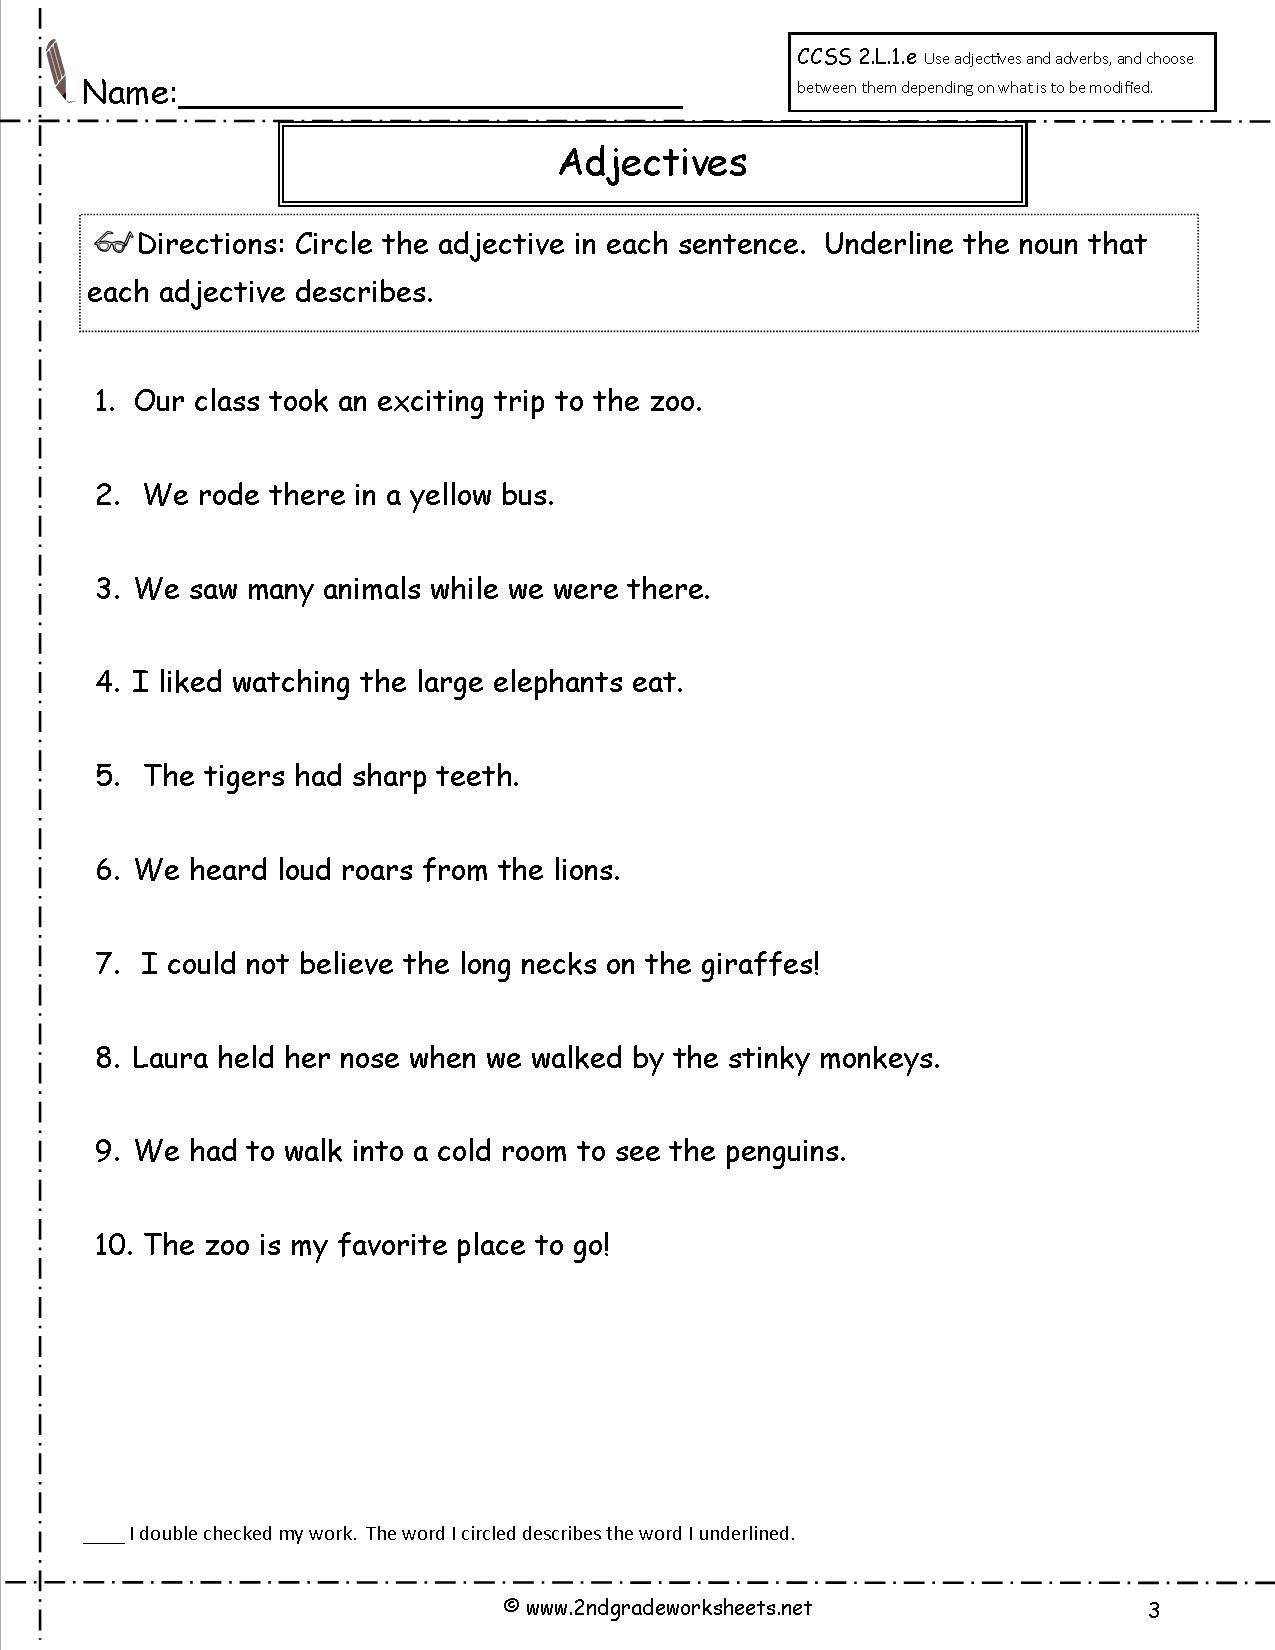 Free Printable Adjective Worksheets Adjectives and Adverbs Worksheets